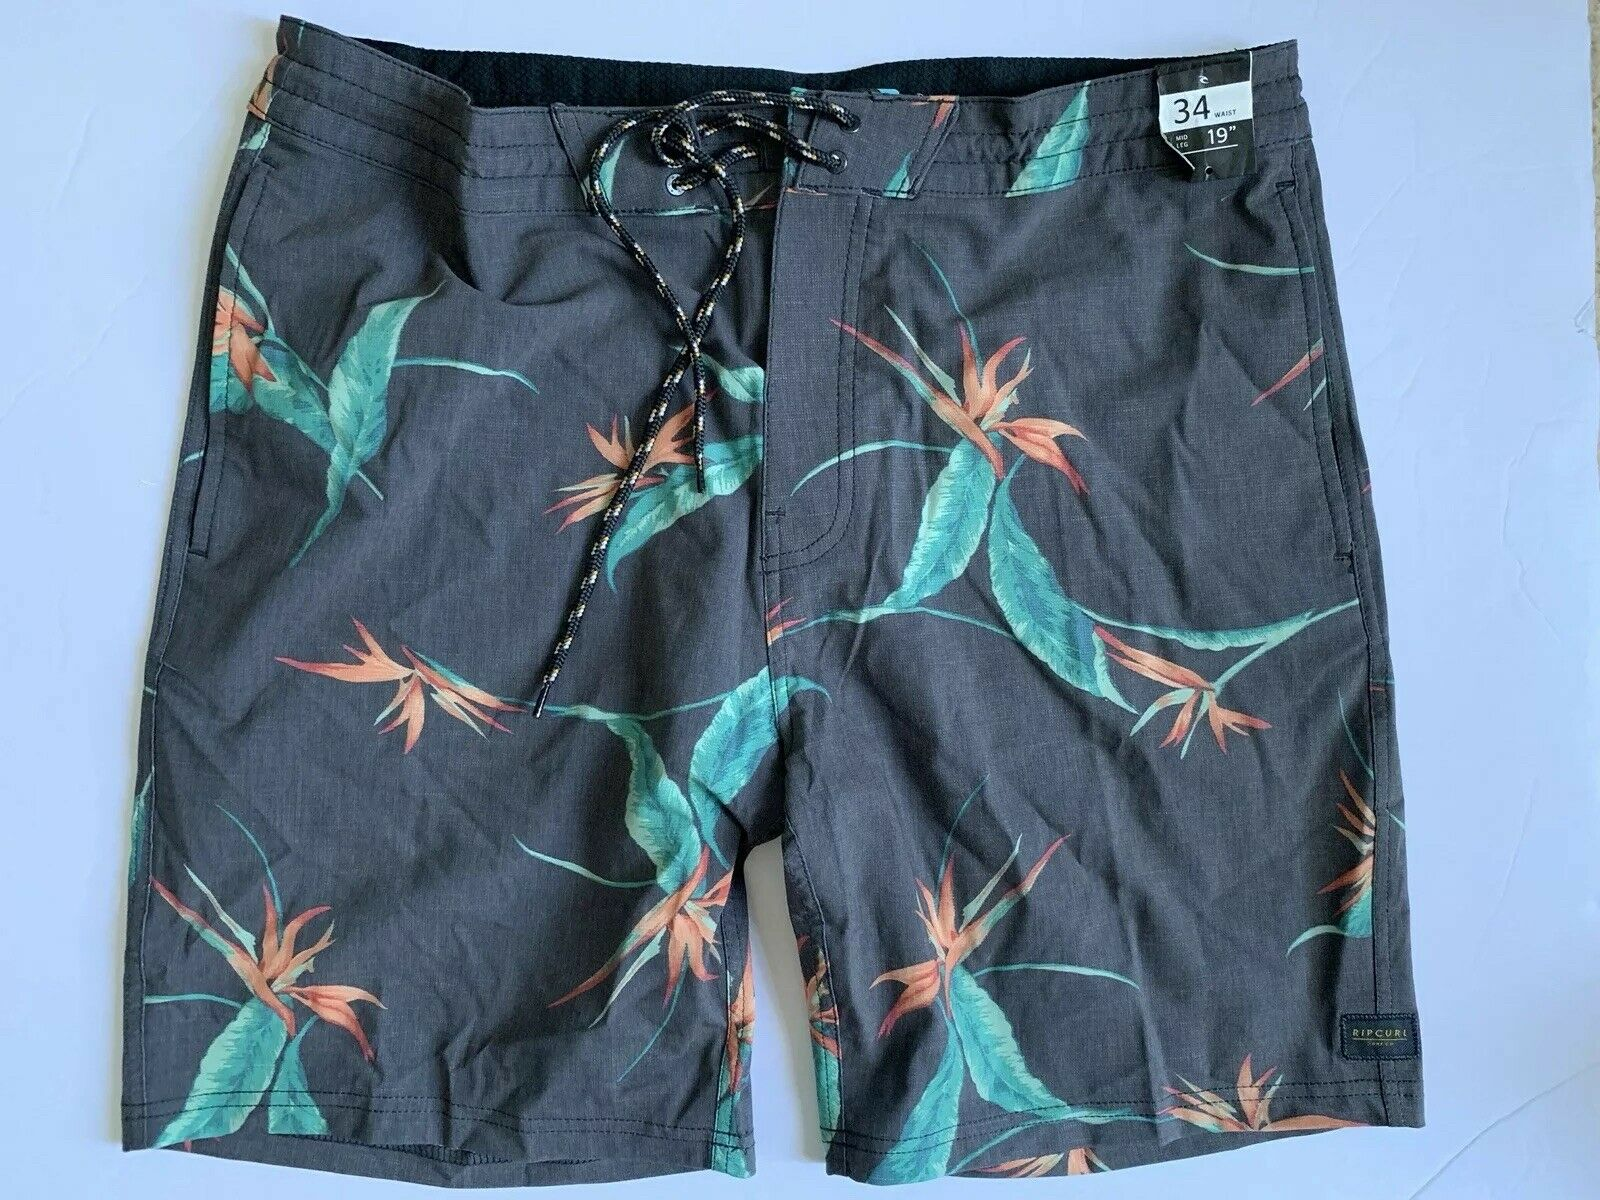 e4ede49e NWT CURL MEN'S LAY DAYS Brown PRINT BOARD SHORTS 34 FLORAL RIP ...